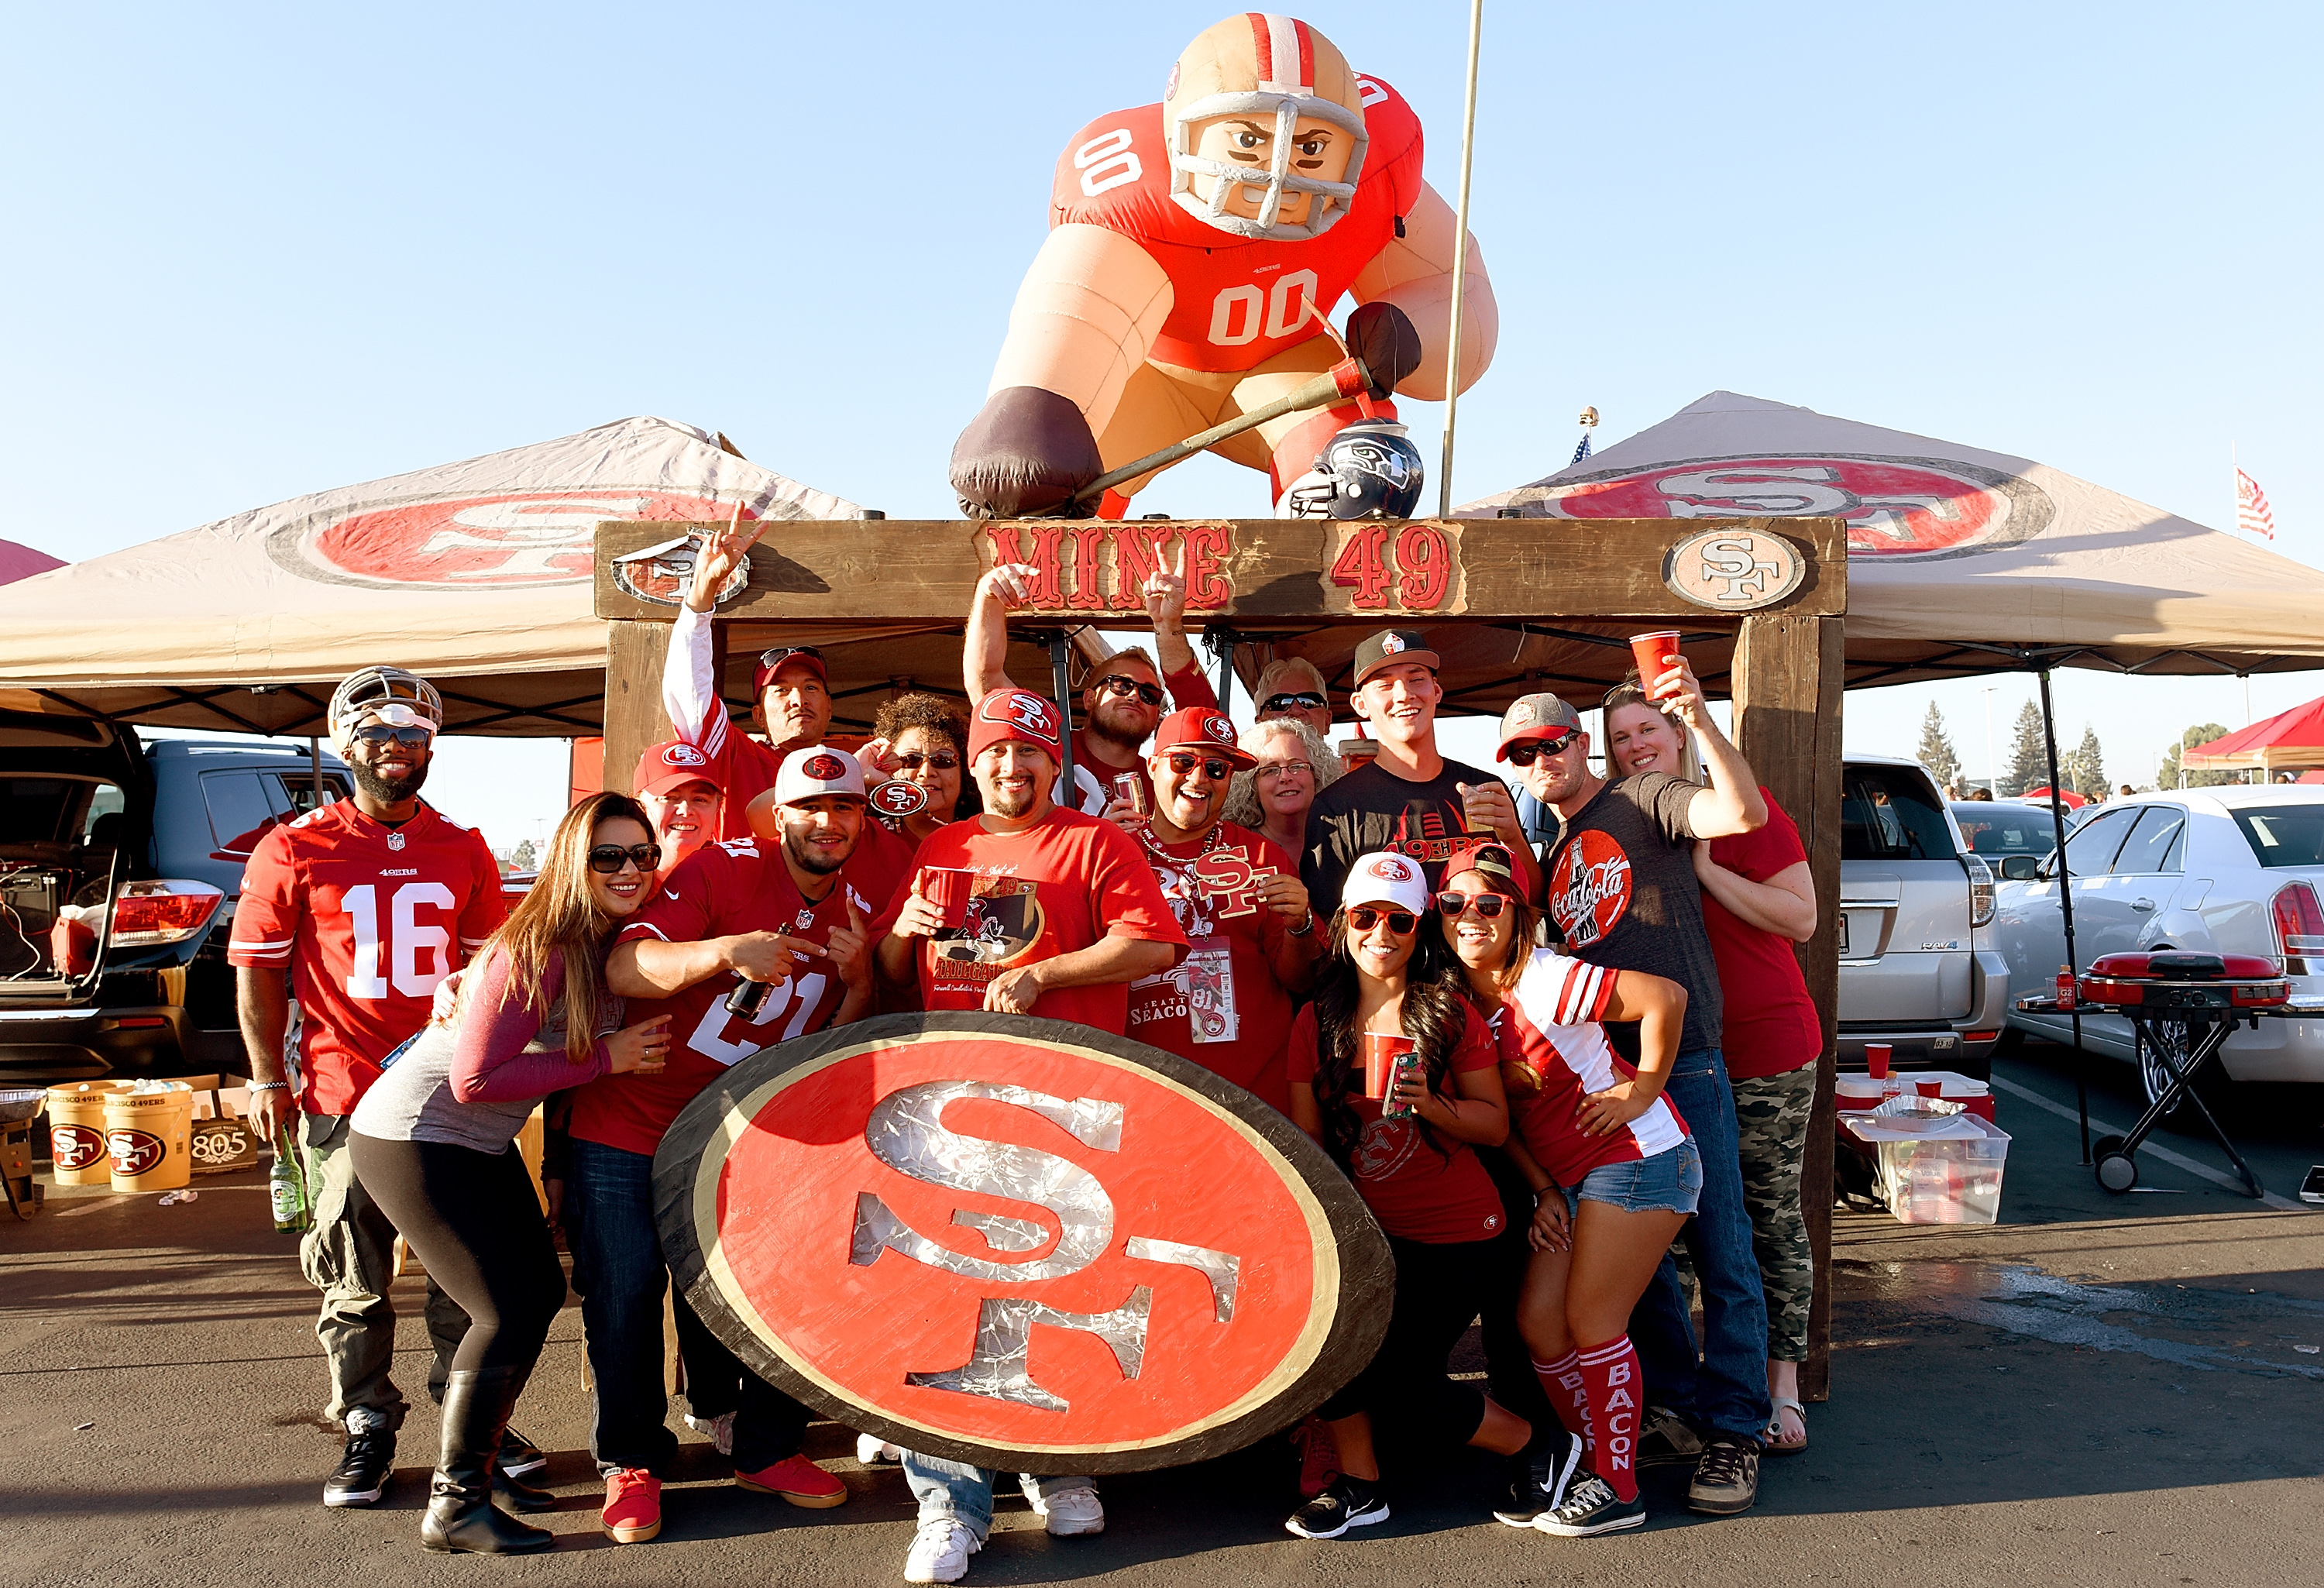 San Francisco 49ers fans tailgate prior to the game against the Seattle Seahawks at Levi's Stadium in California